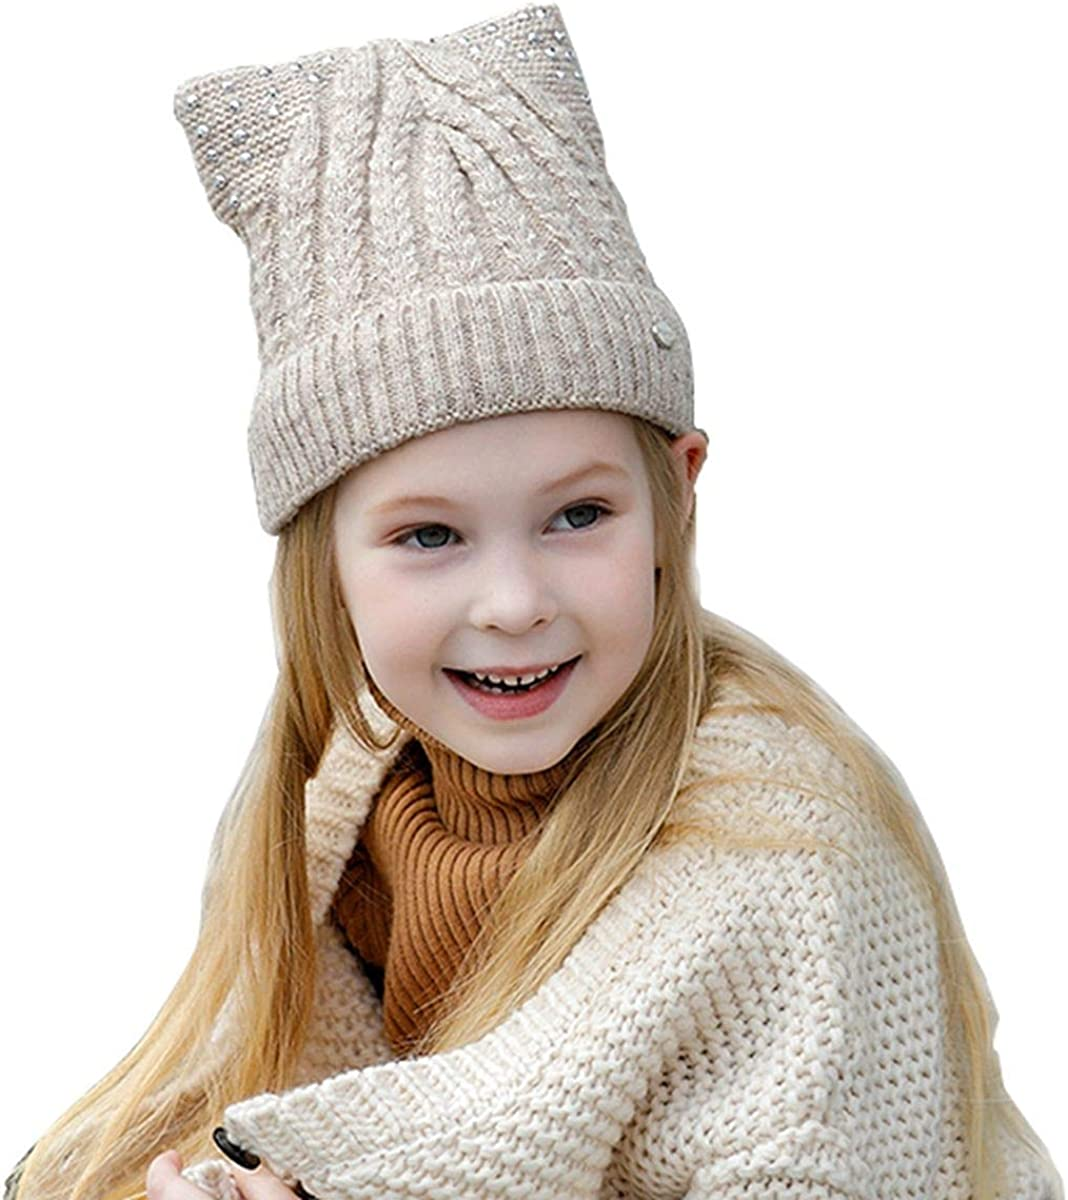 MOOKZZ Winter Knit Cable Beanie Baby Girls Acrylic Cute Hat Warm Cotton Lined Skull Cap